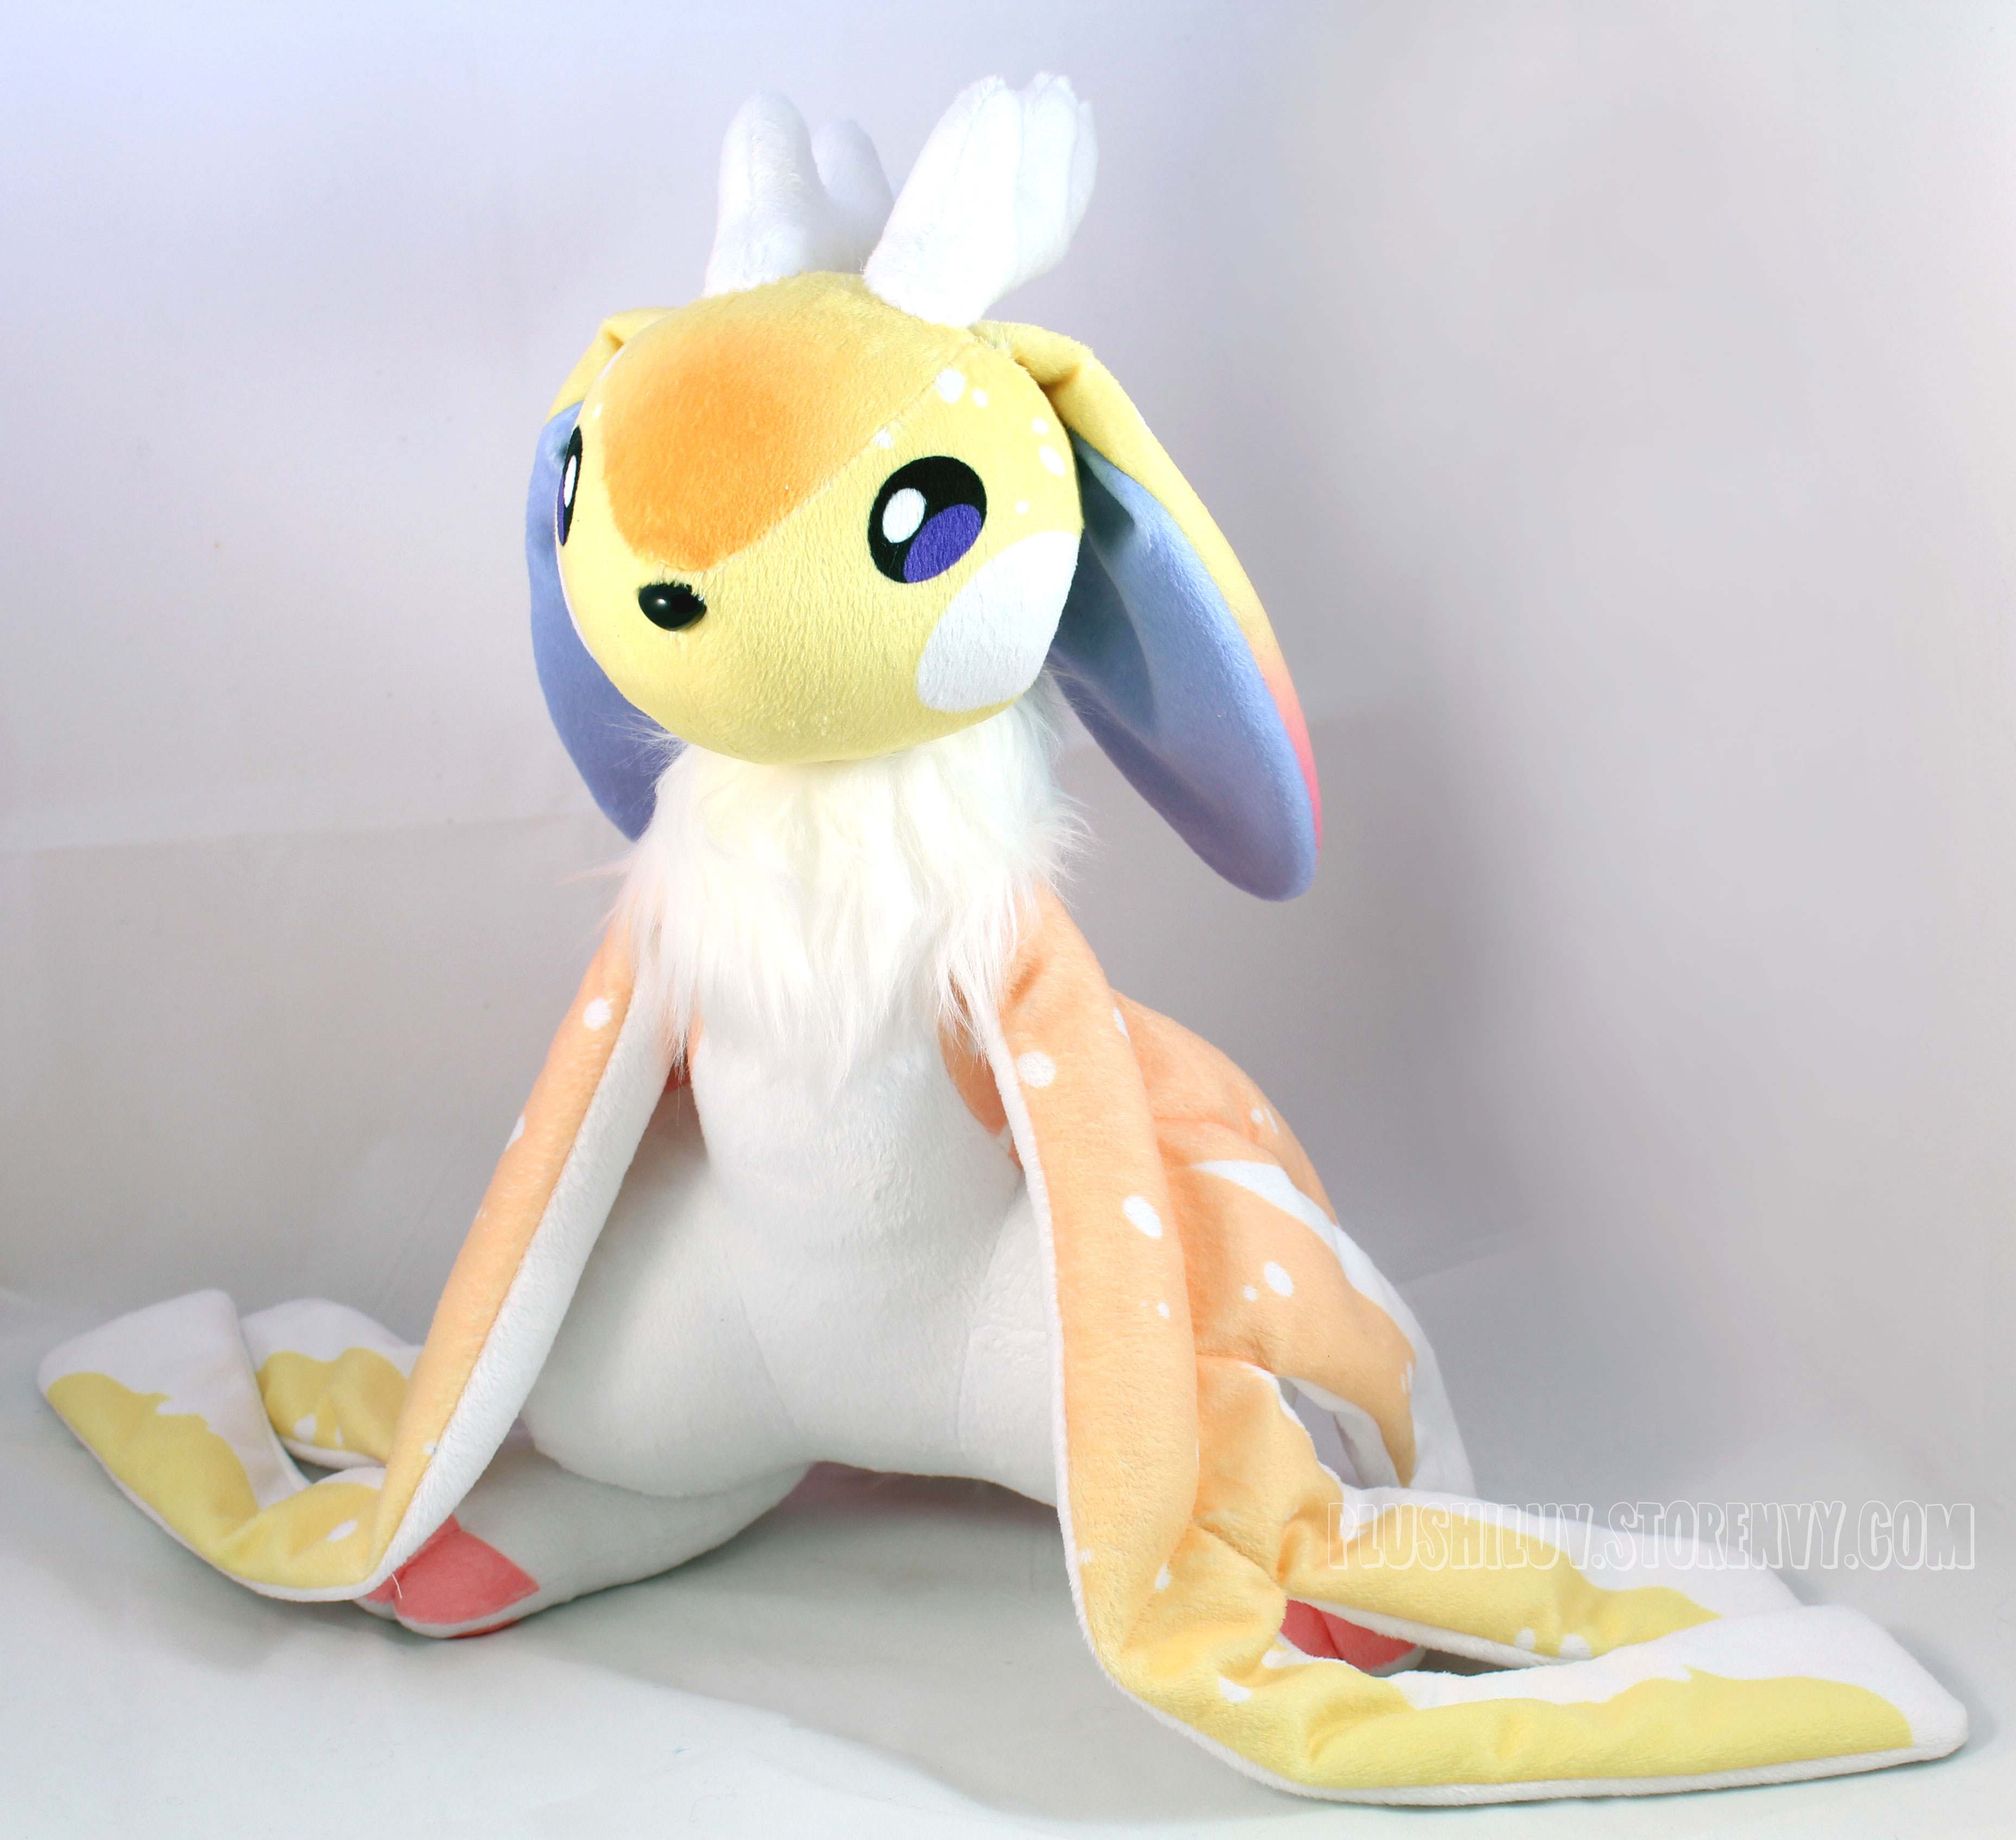 sorbet wolpertinger 183 plushiluv 183 online store powered by